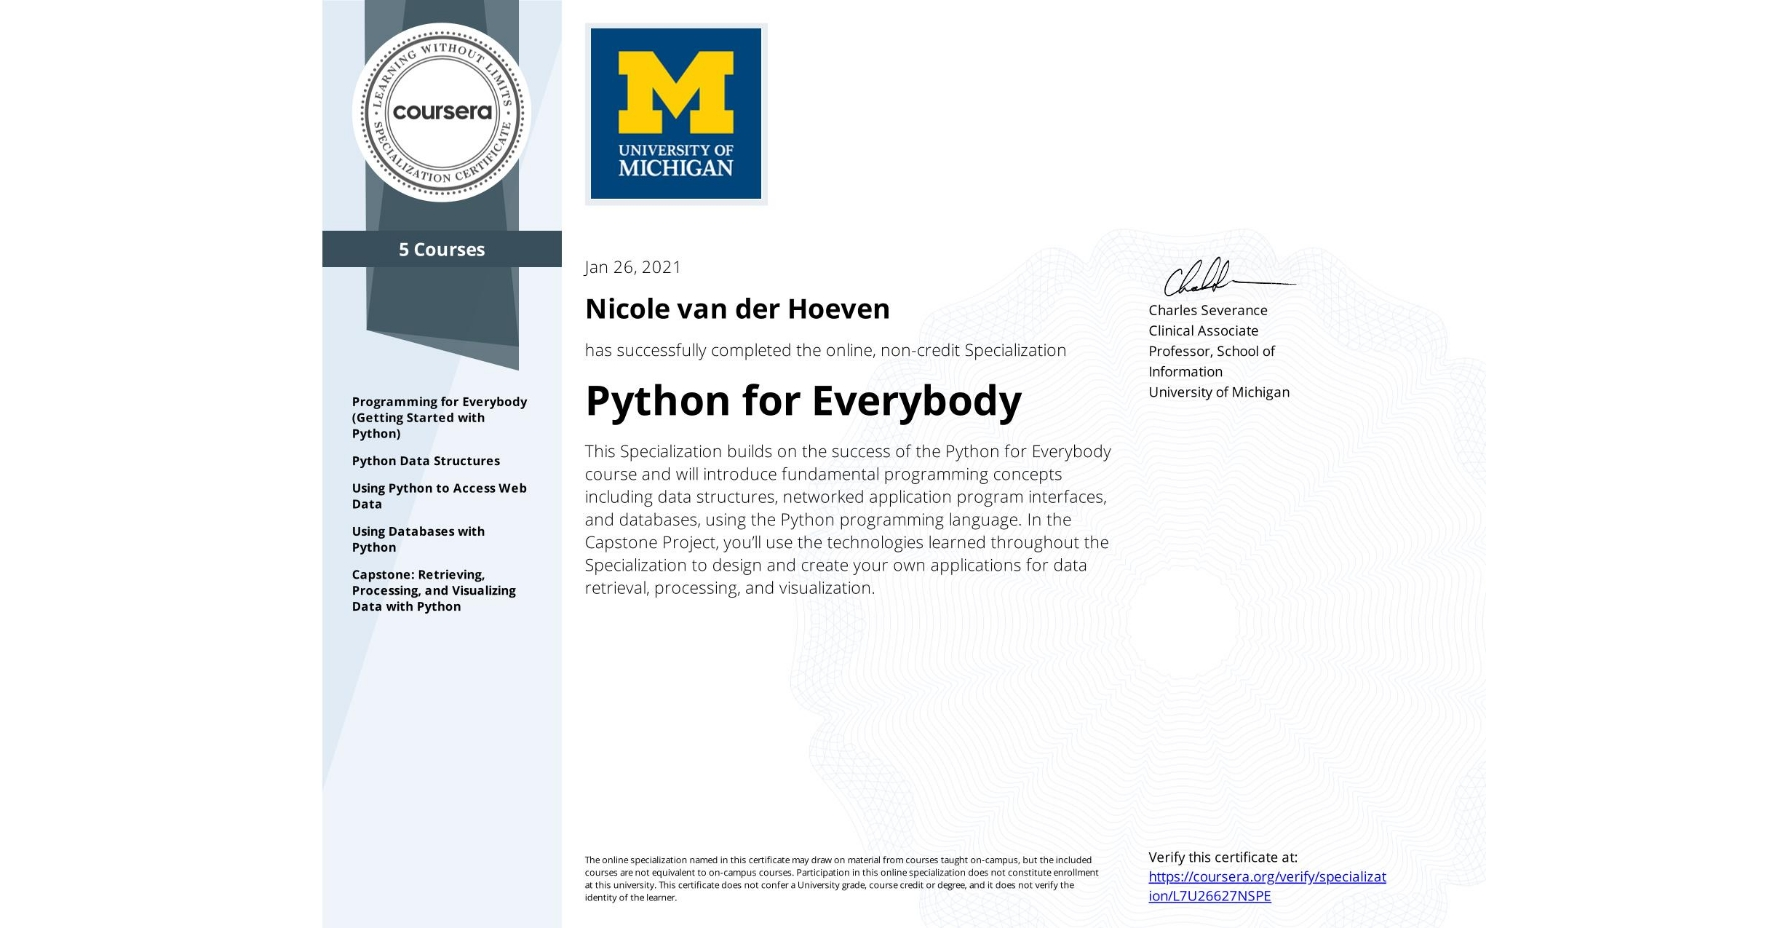 View certificate for Nicole van der Hoeven, Python for Everybody, offered through Coursera. This Specialization builds on the success of the Python for Everybody course and will introduce fundamental programming concepts including data structures, networked application program interfaces, and databases, using the Python programming language. In the Capstone Project, you'll use the technologies learned throughout the Specialization to design and create your own applications for data retrieval, processing, and visualization.